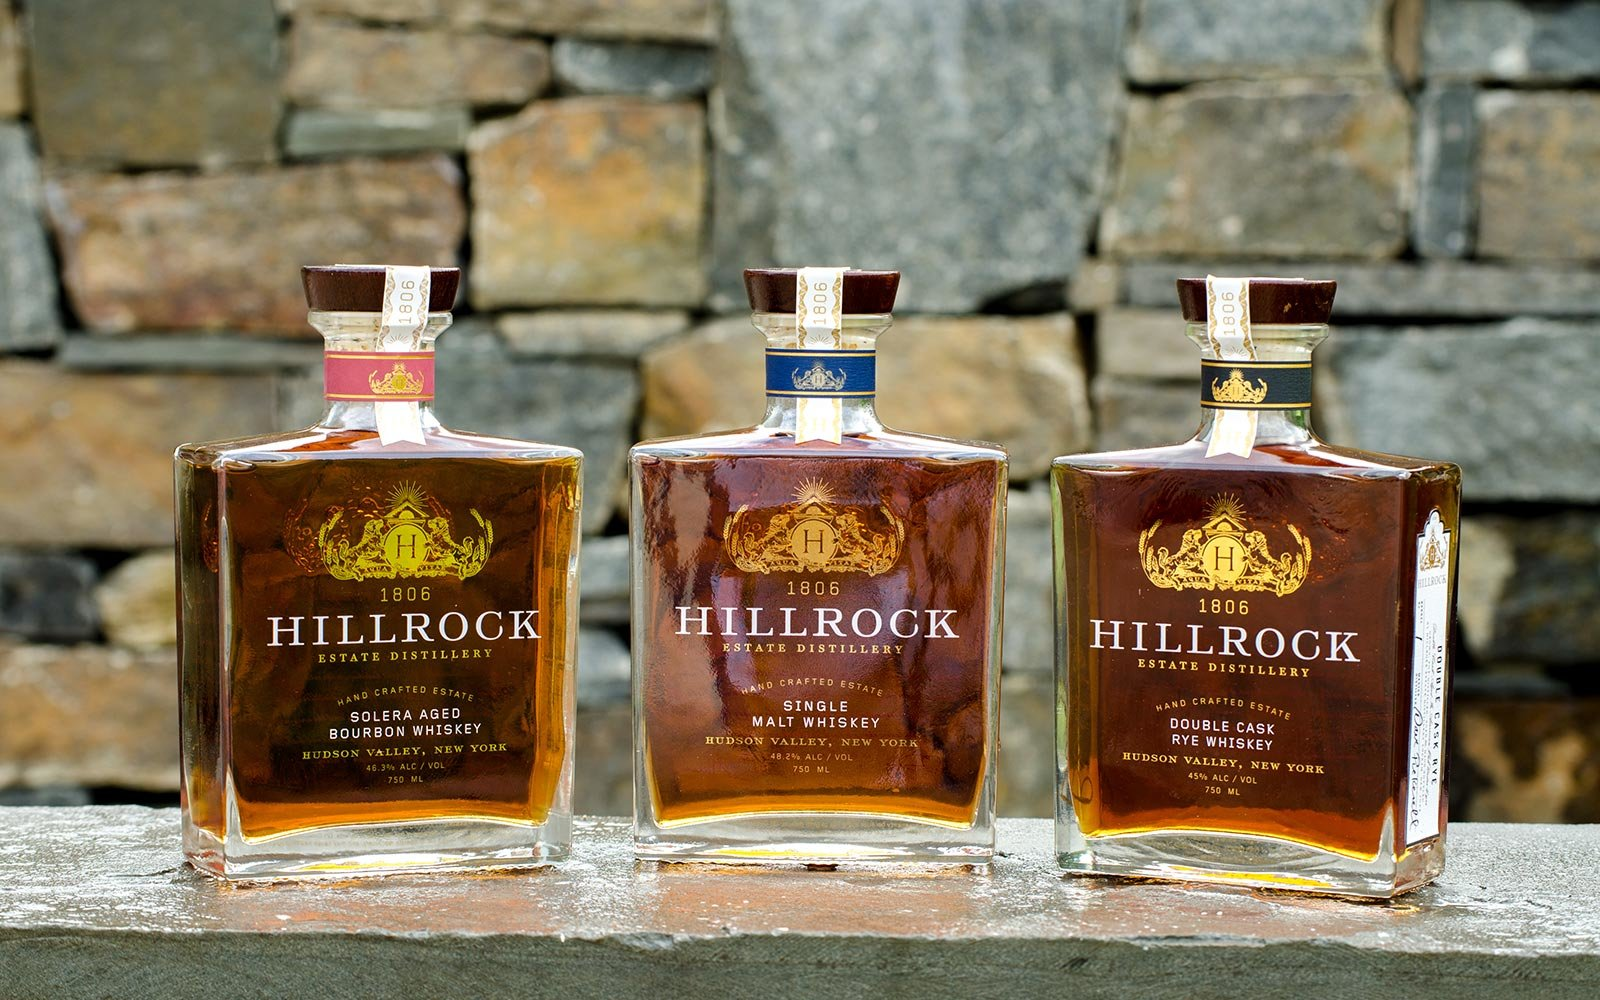 Hillrock Estate Distillery, Ancram, NY